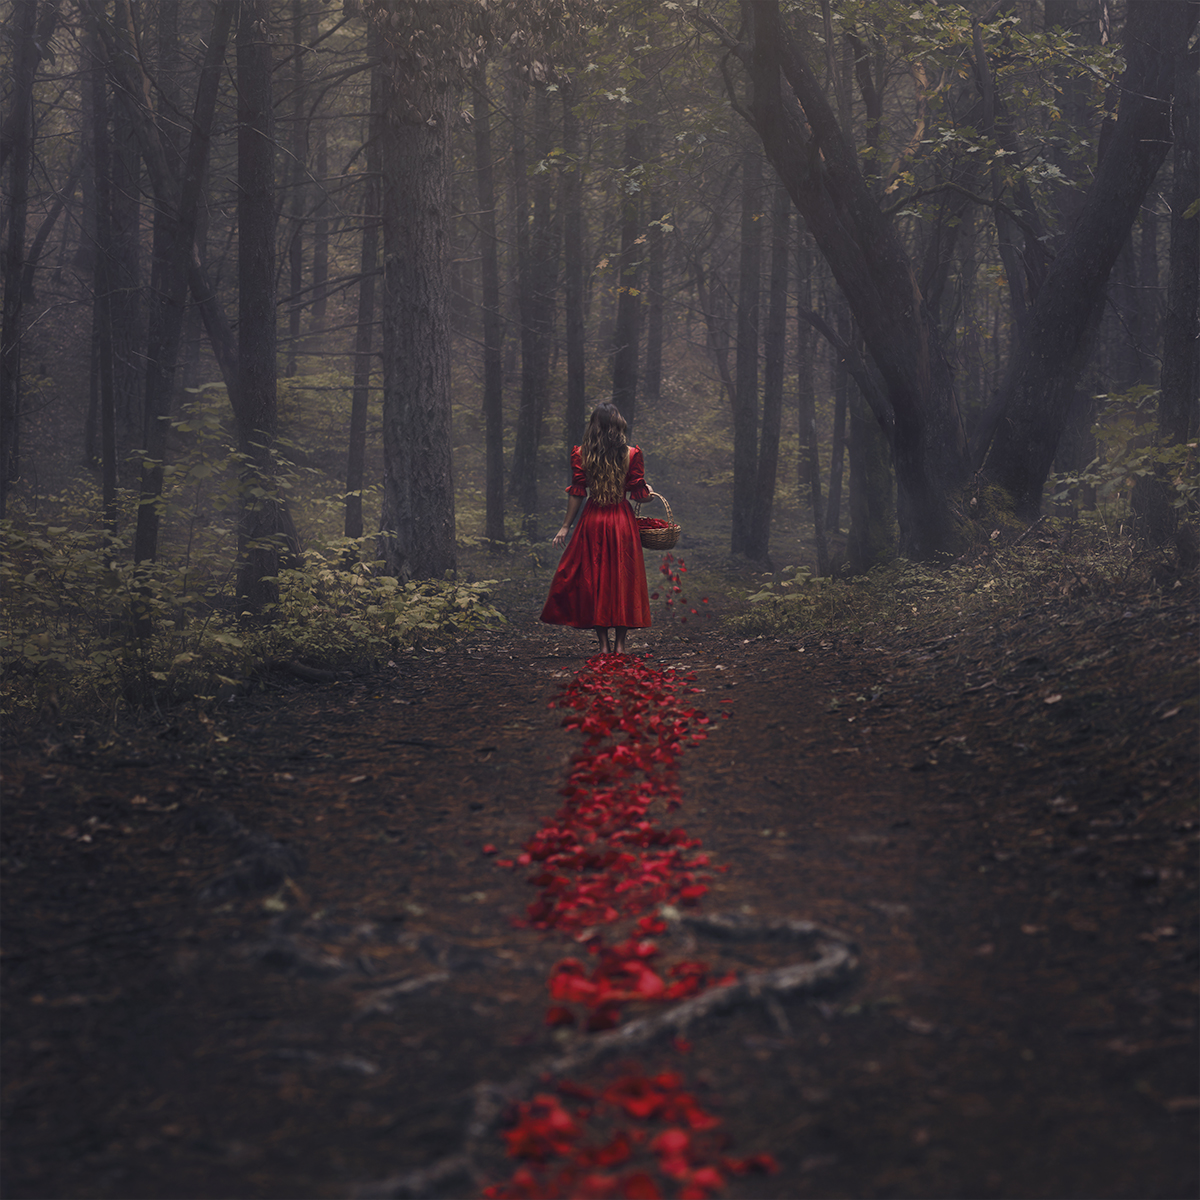 Dark Romantics Images Fairy Tale HD Wallpaper And Background Photos